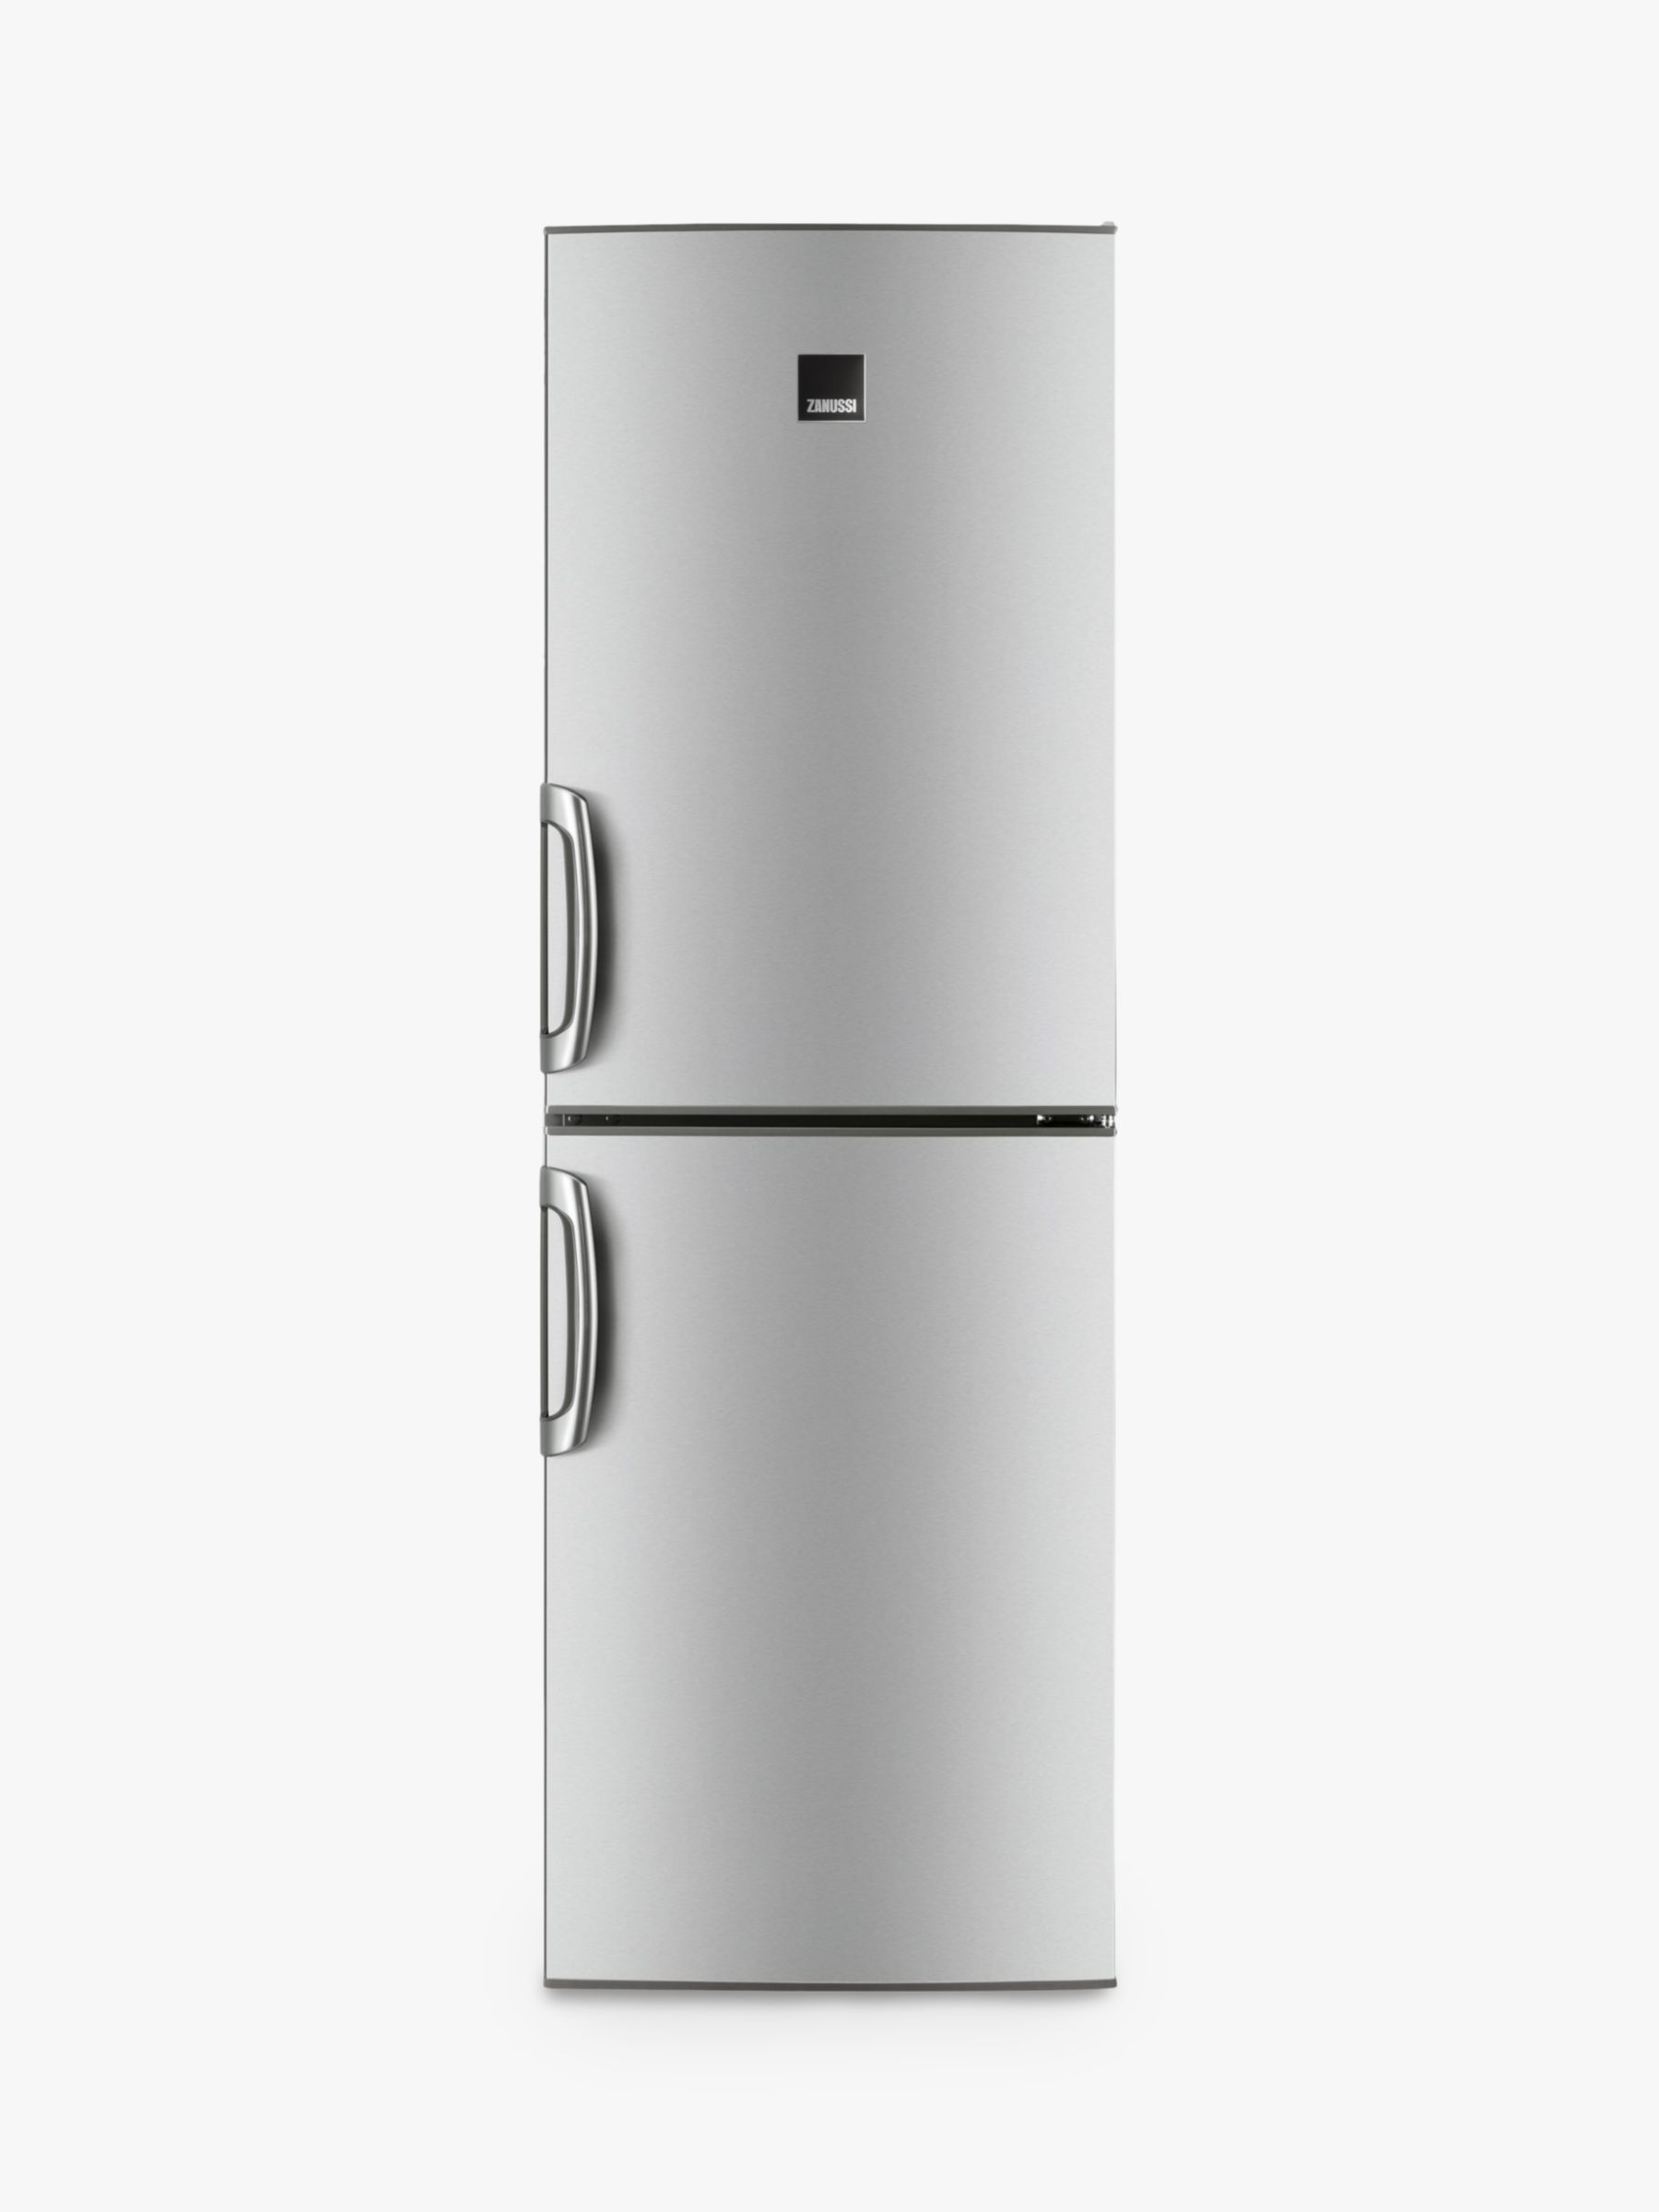 Zanussi Zanussi ZRB34426XV Fridge Freezer, A++ Energy Rating, 60cm Wide